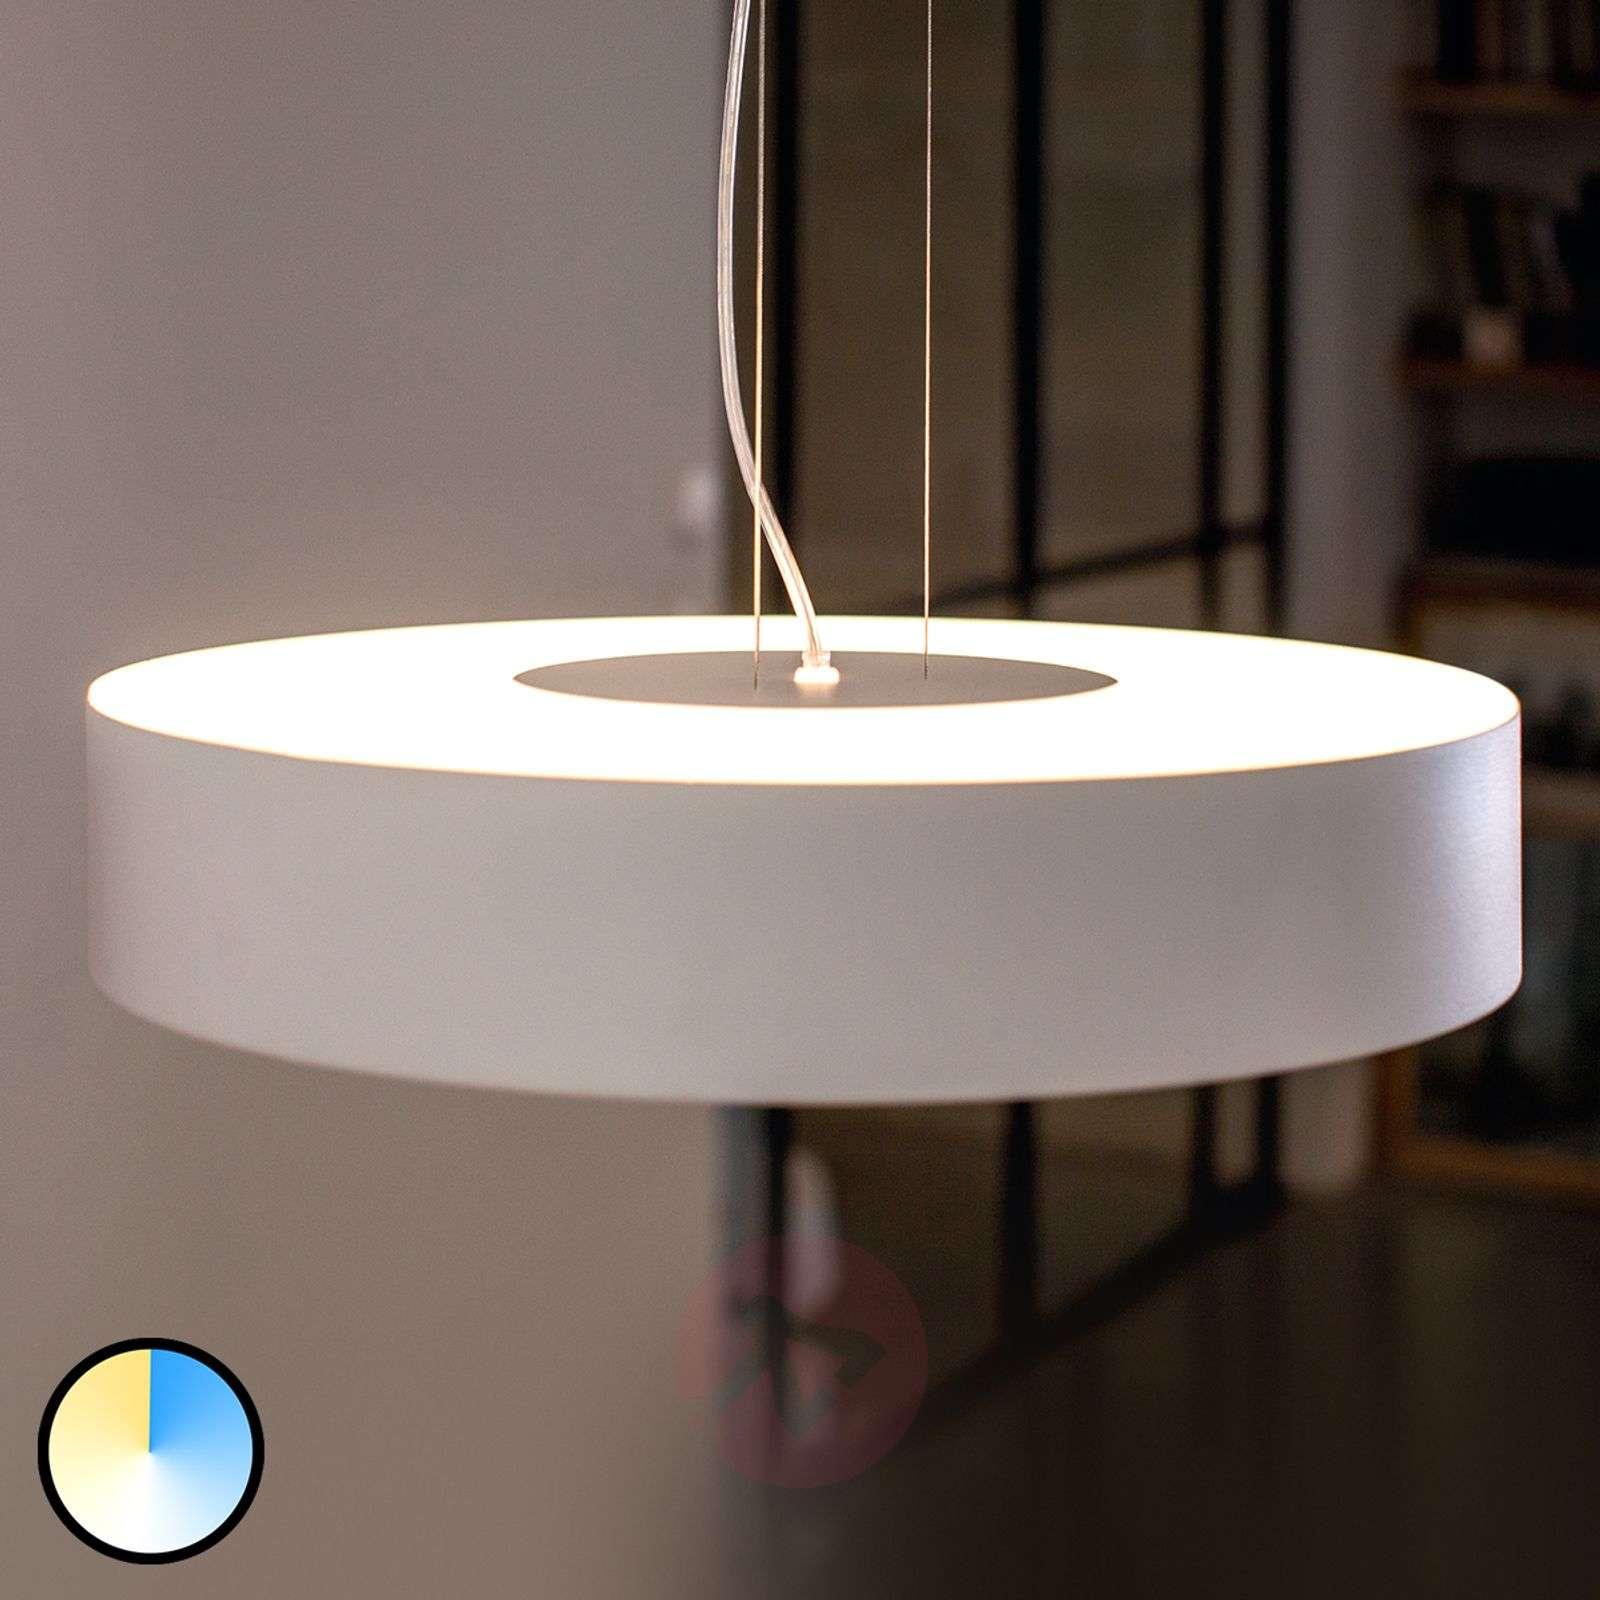 Plafoniera Led Philips Prezzo : Acquista fair sospensione a led philips hue lampade